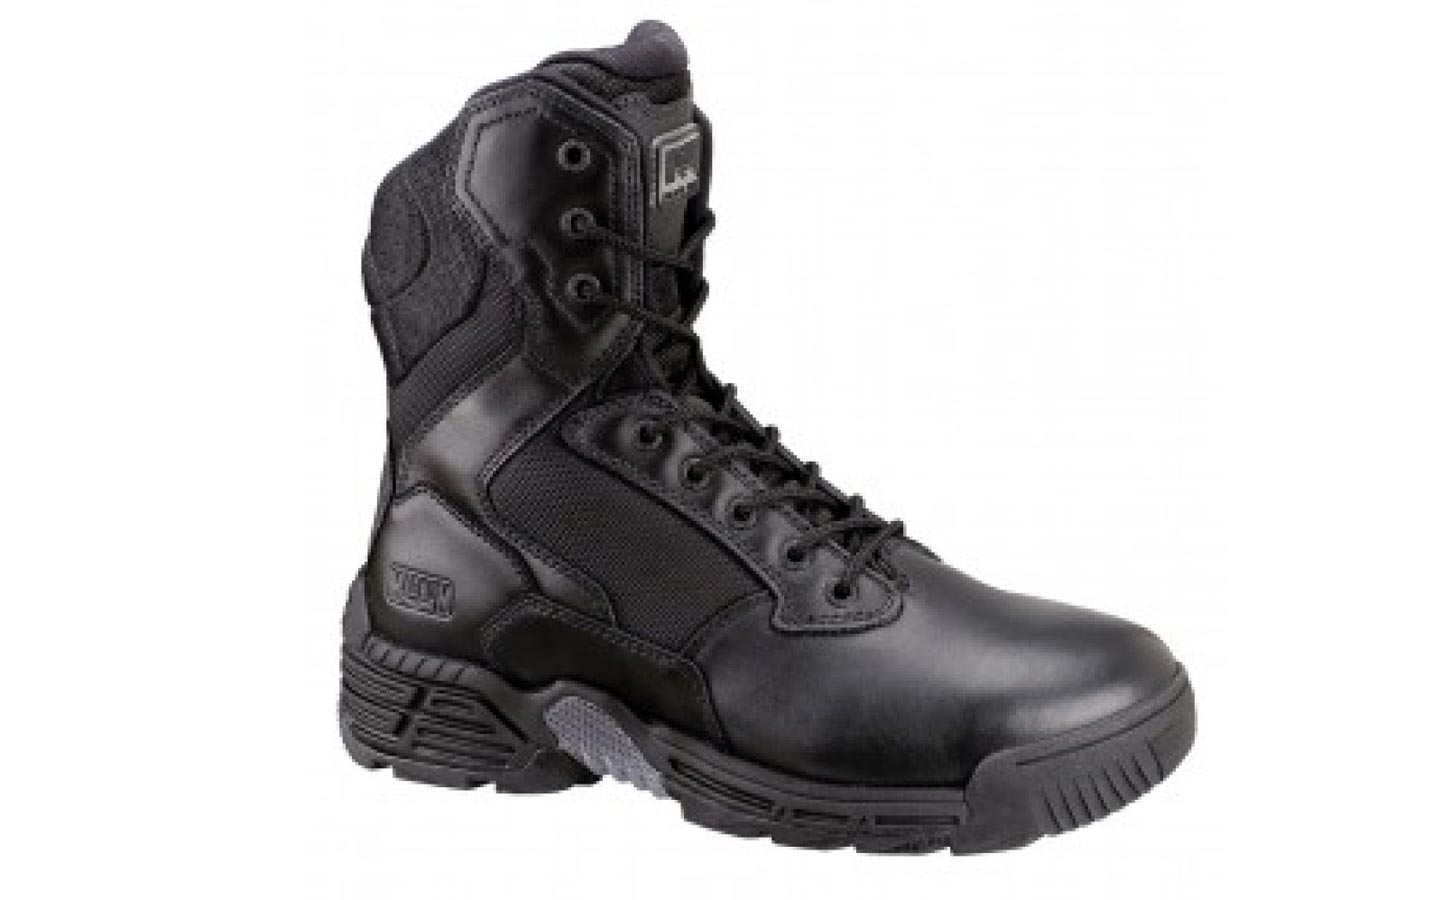 Chaussures-rangers-Magnum-Stealth-Force-8.0